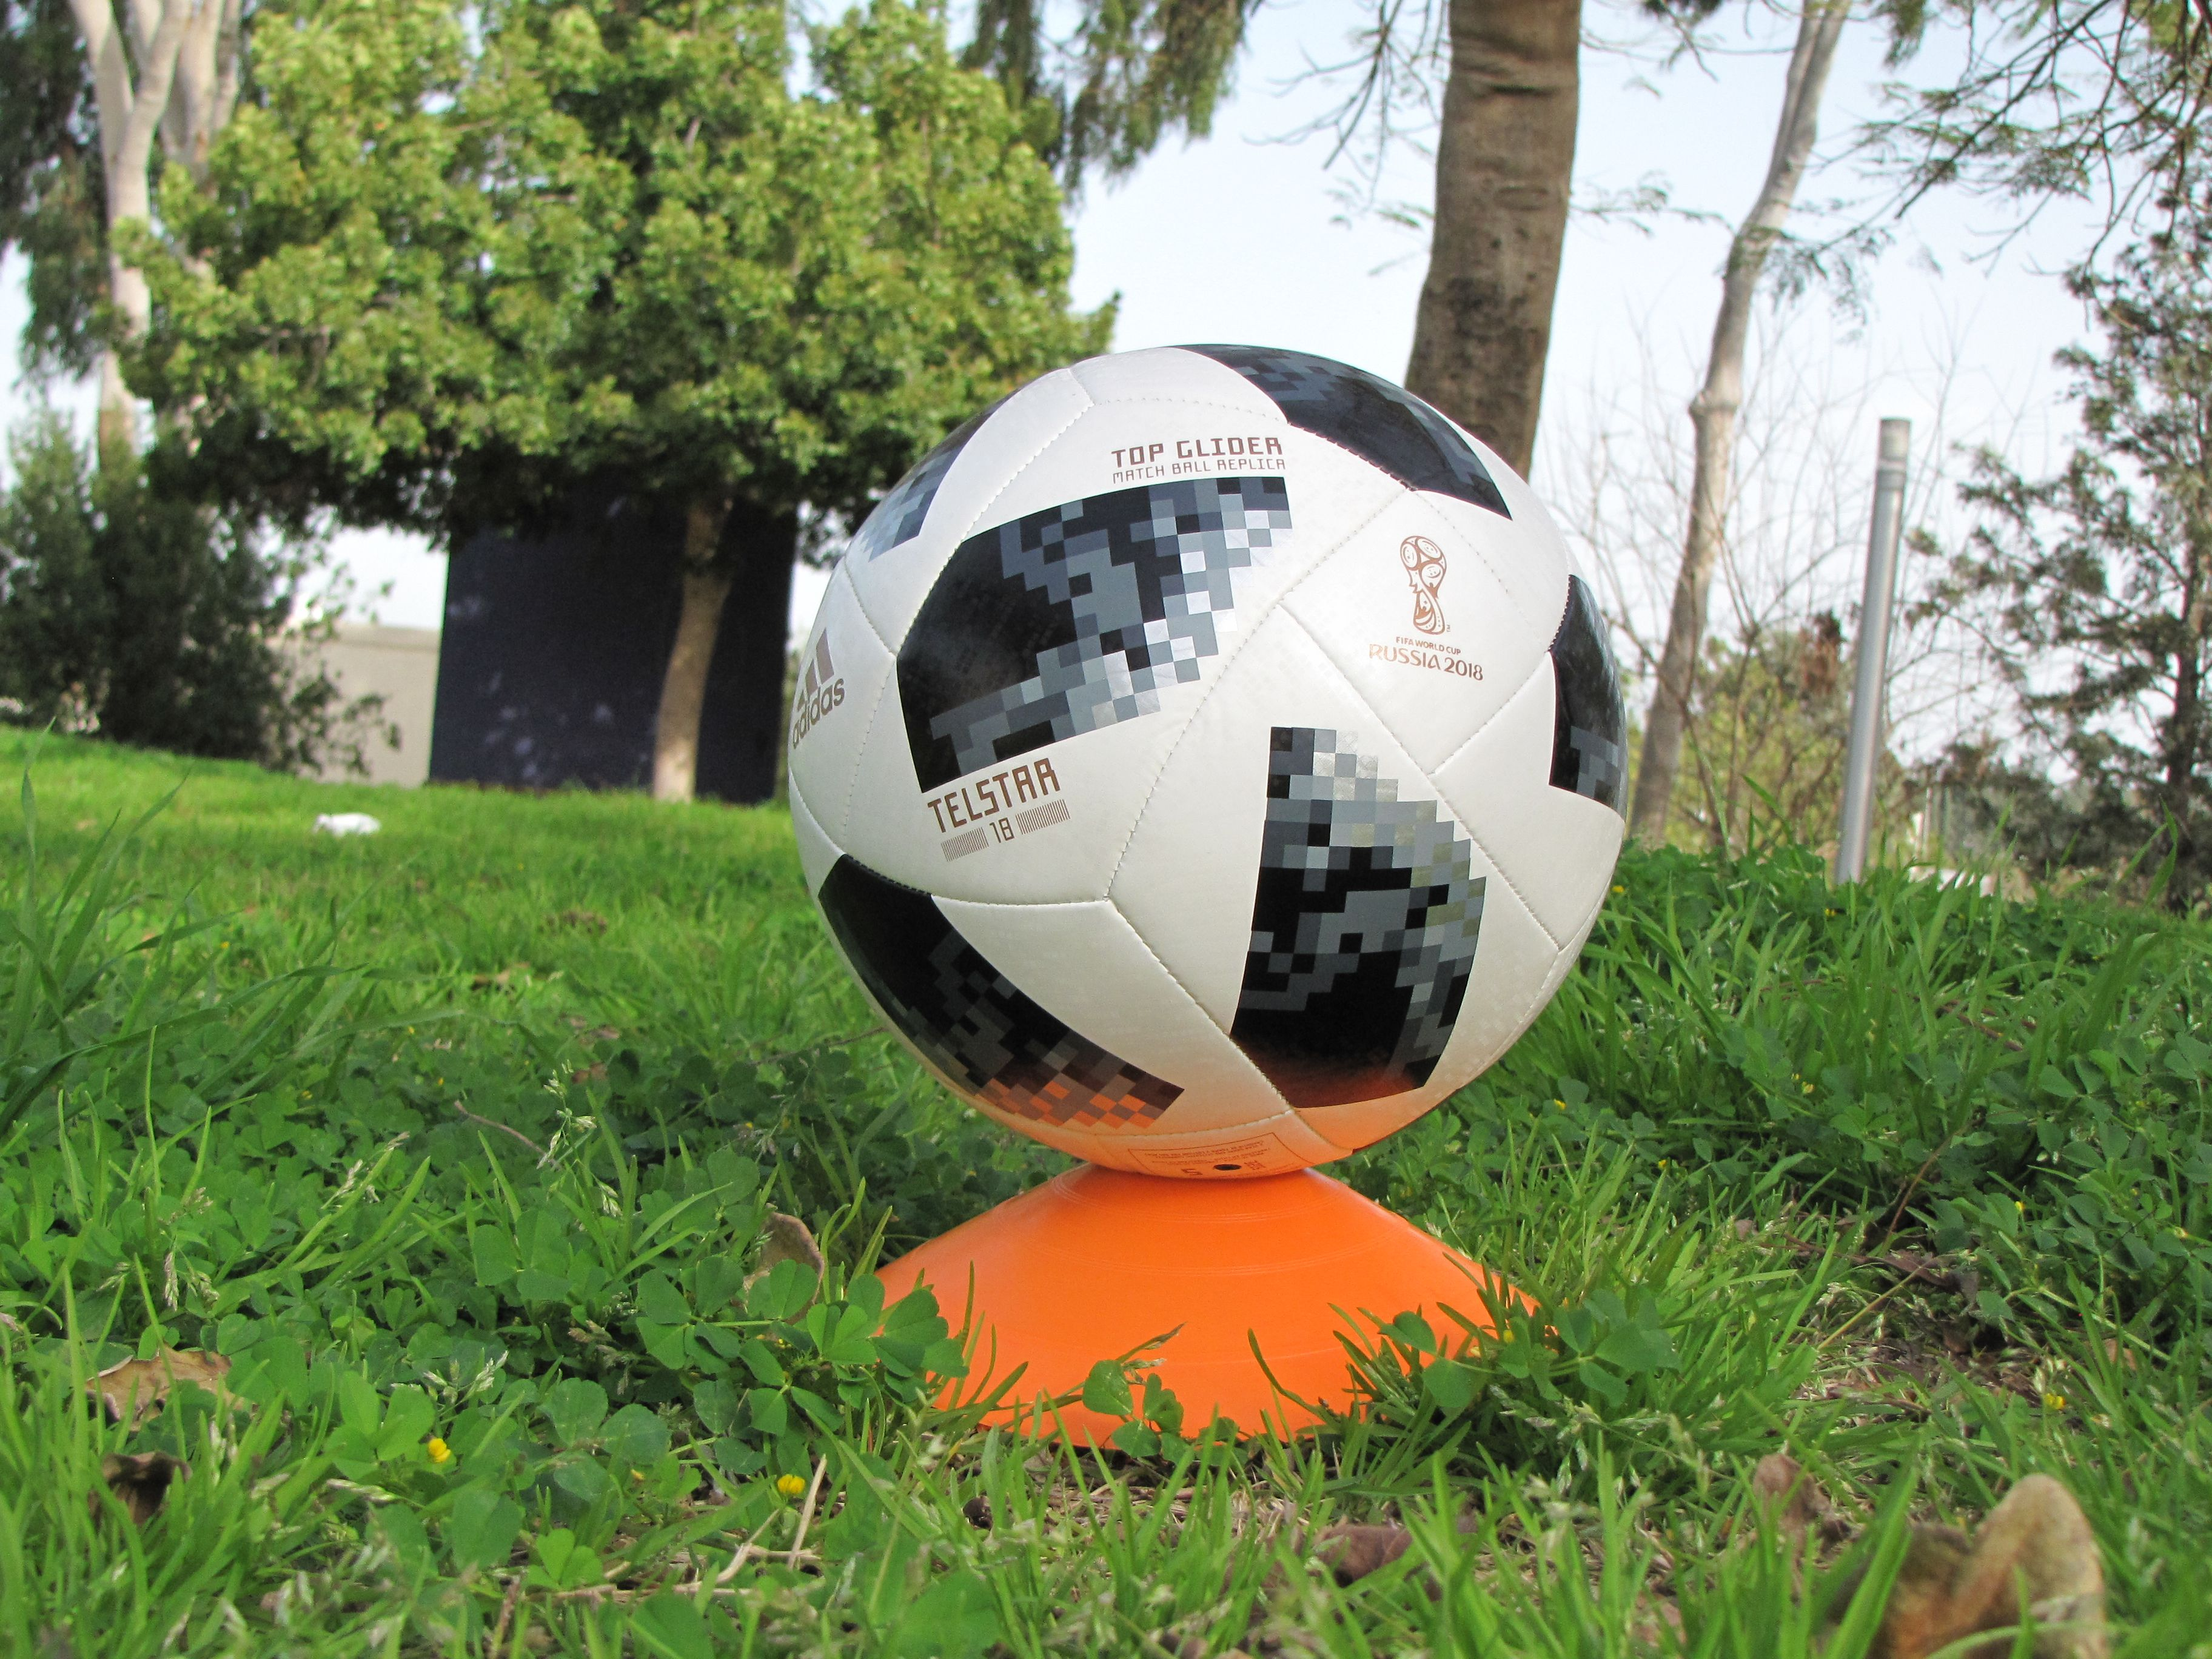 Football Training Cones Don T Leave Them Alone Football Soccer Soccer Training Equipment Football Training Soccer Training